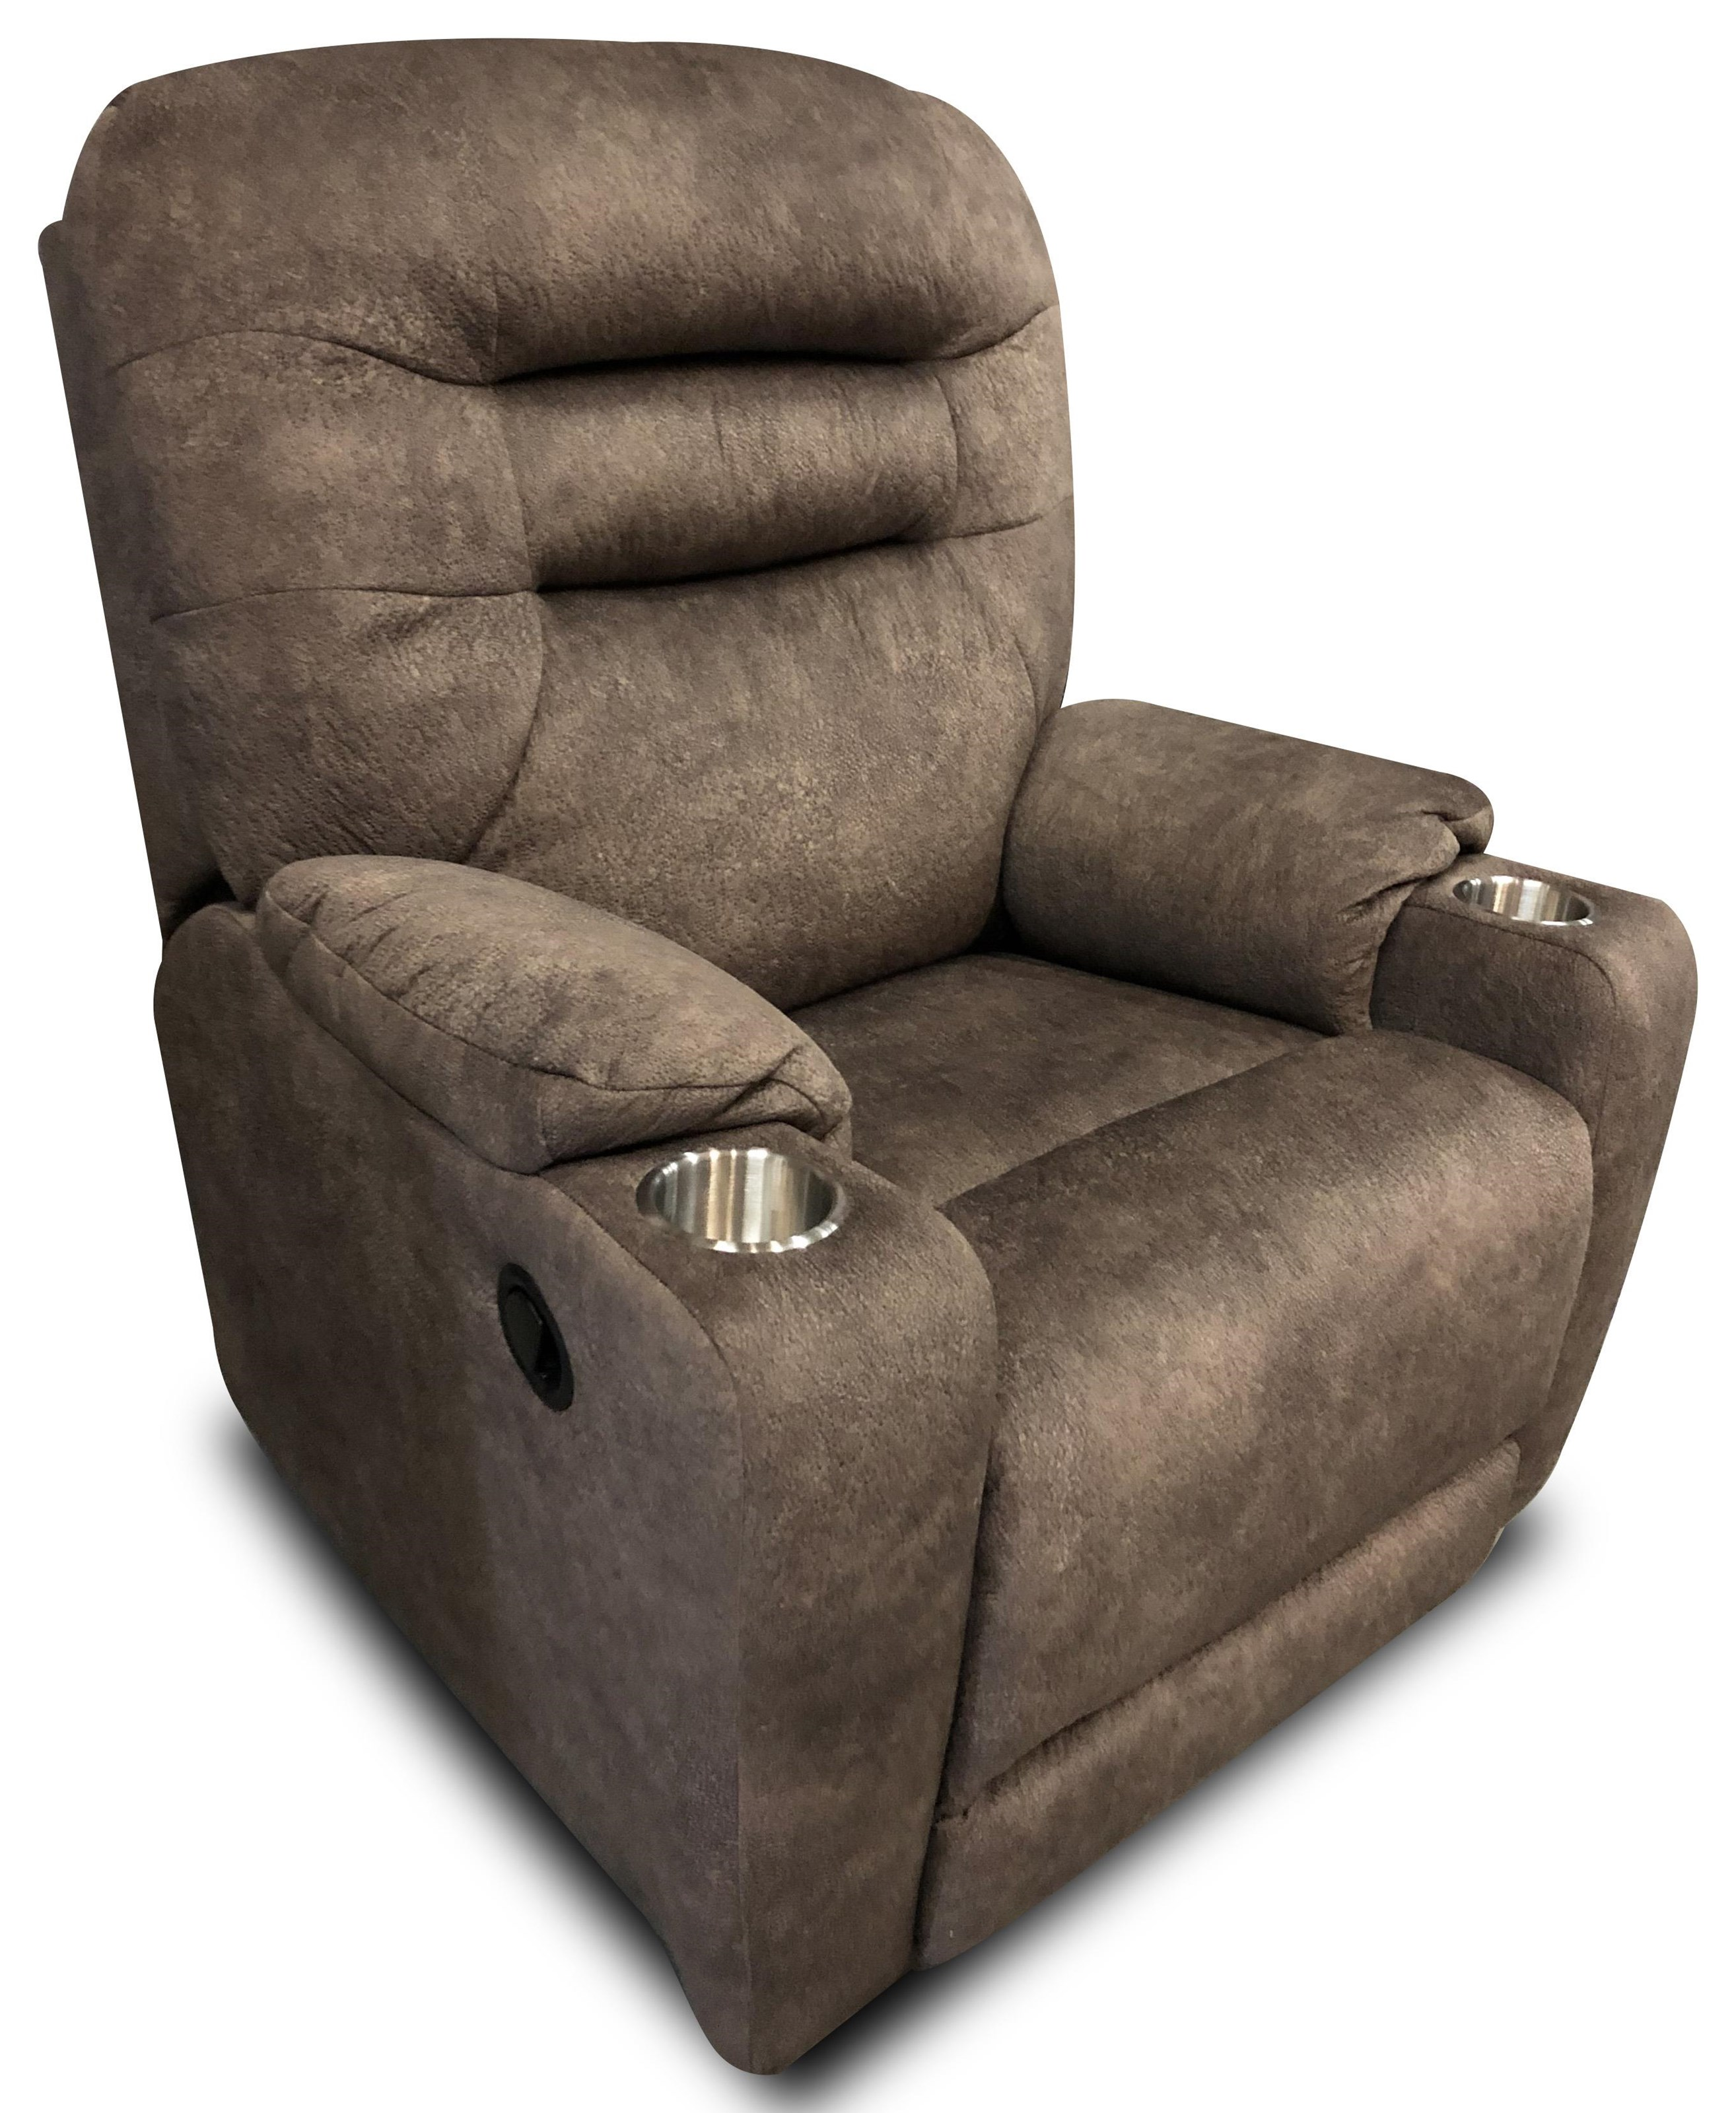 Front Row Wallhugger Recliner by Southern Motion at Ruby Gordon Home